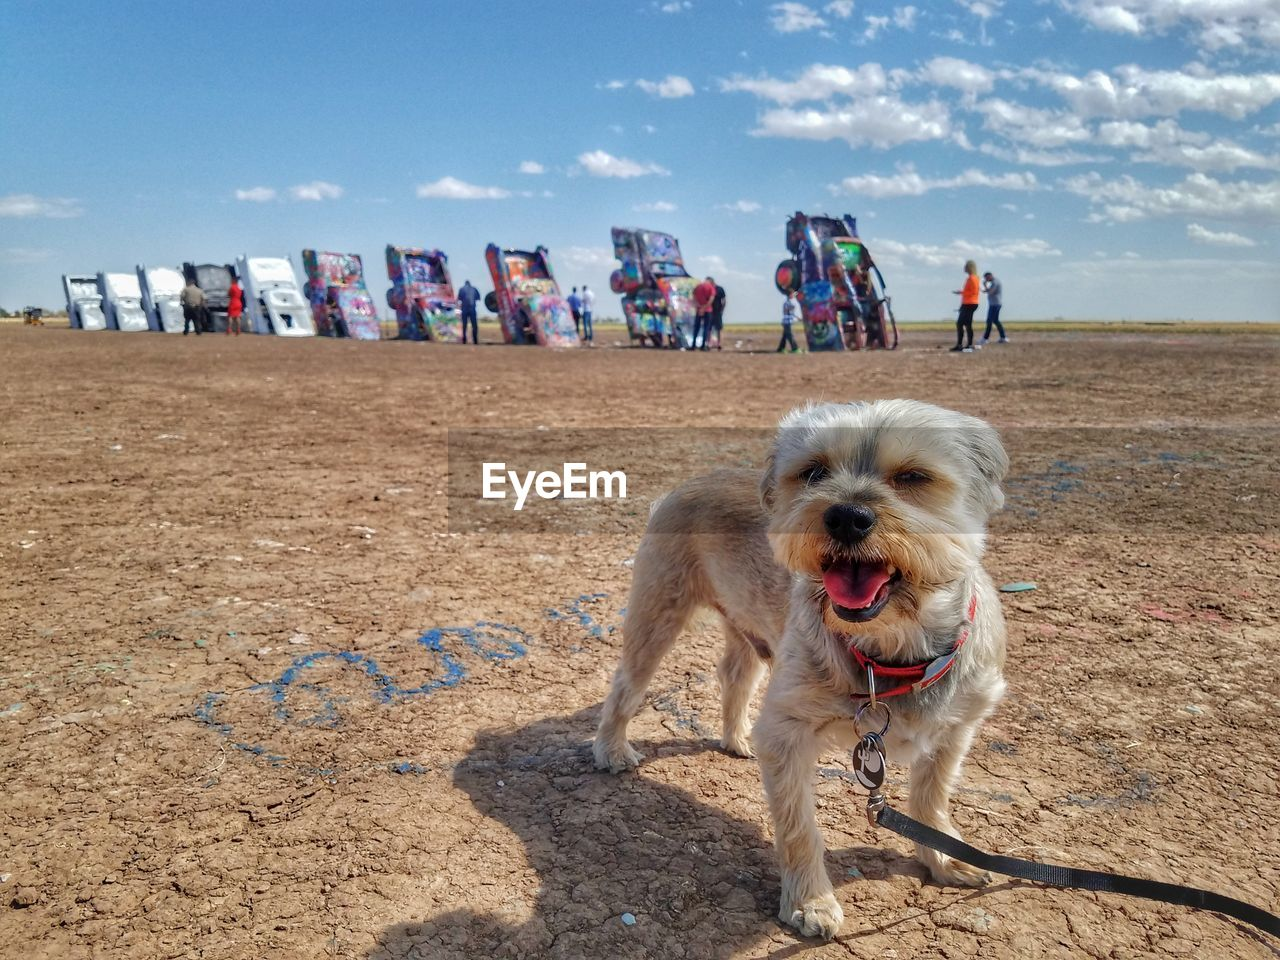 canine, dog, one animal, pets, land, mammal, domestic, domestic animals, vertebrate, nature, sky, day, people, incidental people, beach, real people, sand, cloud - sky, mouth open